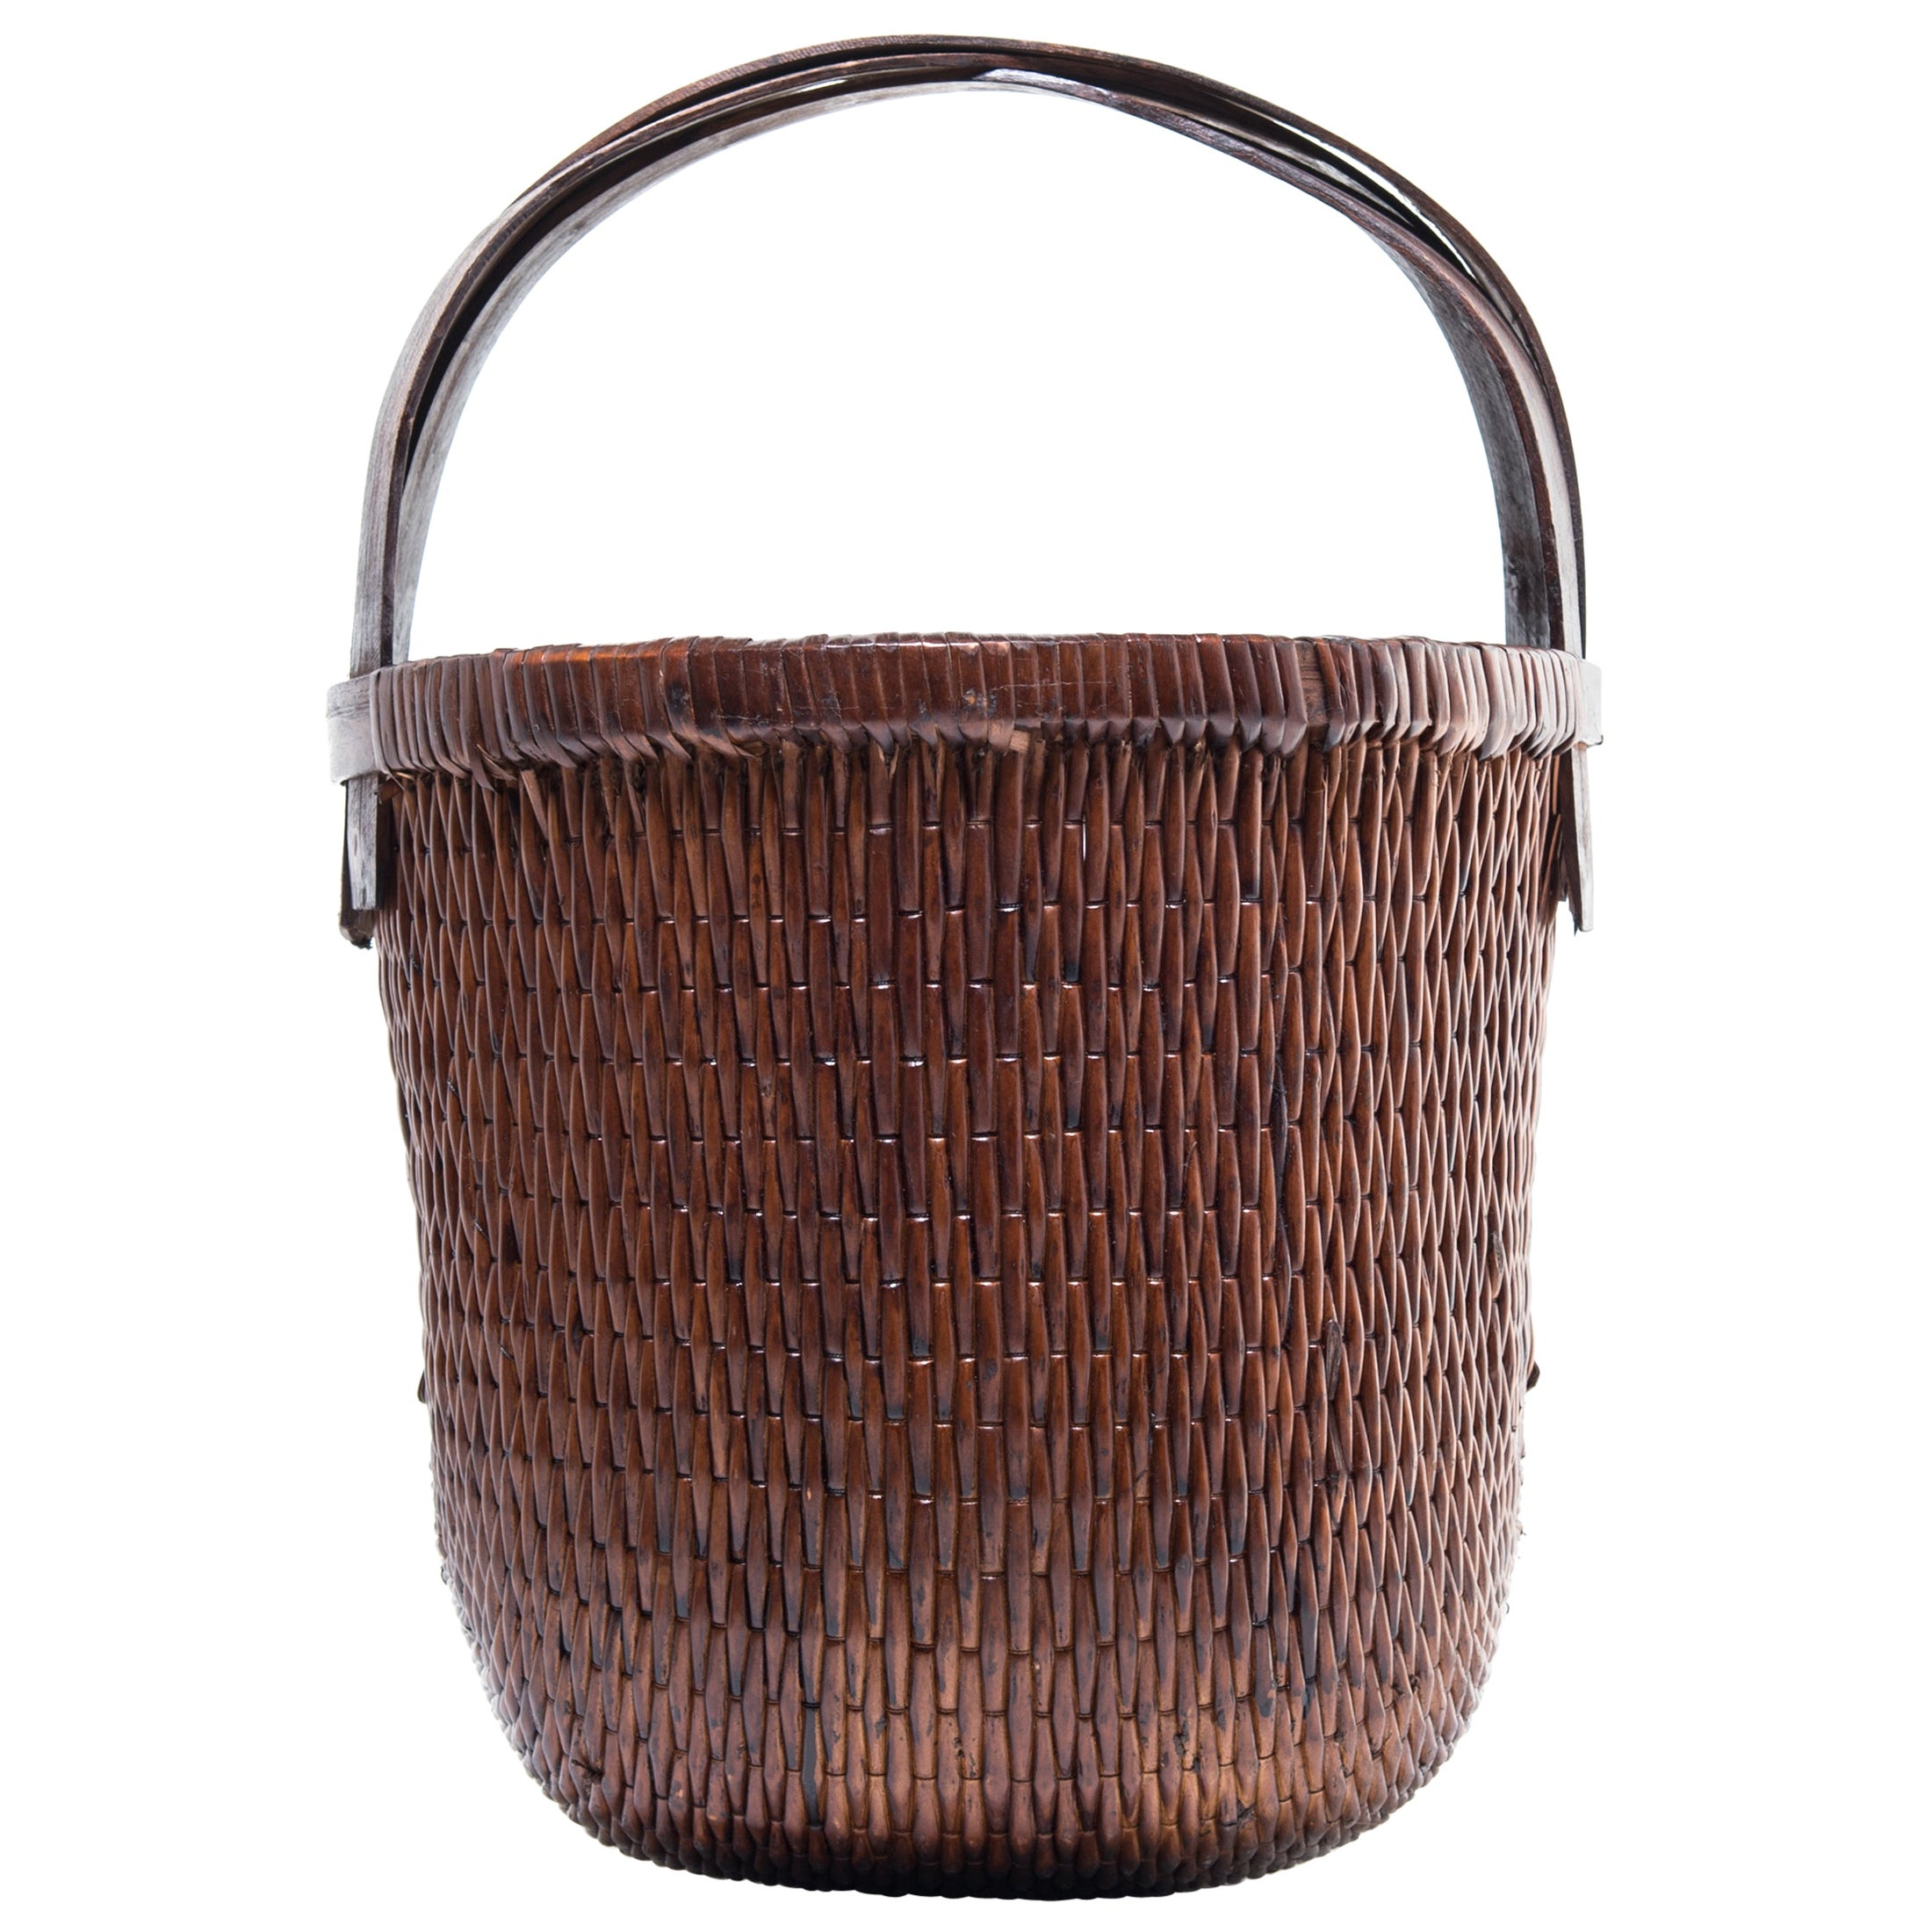 Chinese Bent Handle Willow Basket